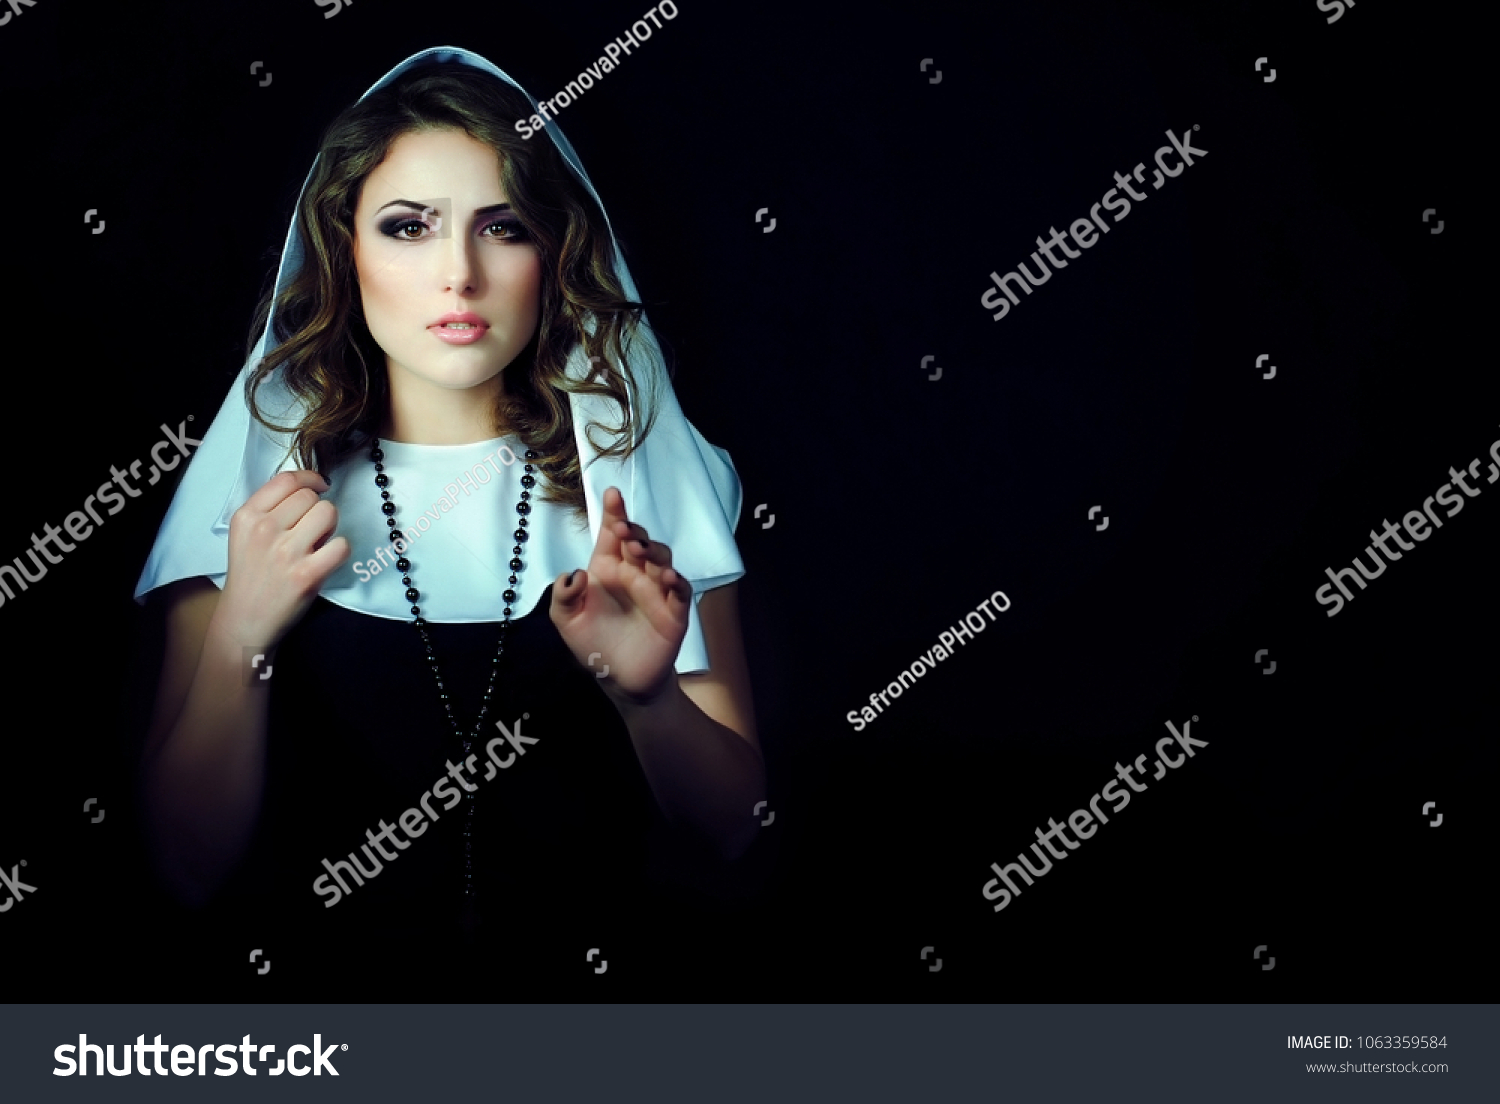 Bright makeup on the girl's face. A beautiful nun with a cross. Portrait of